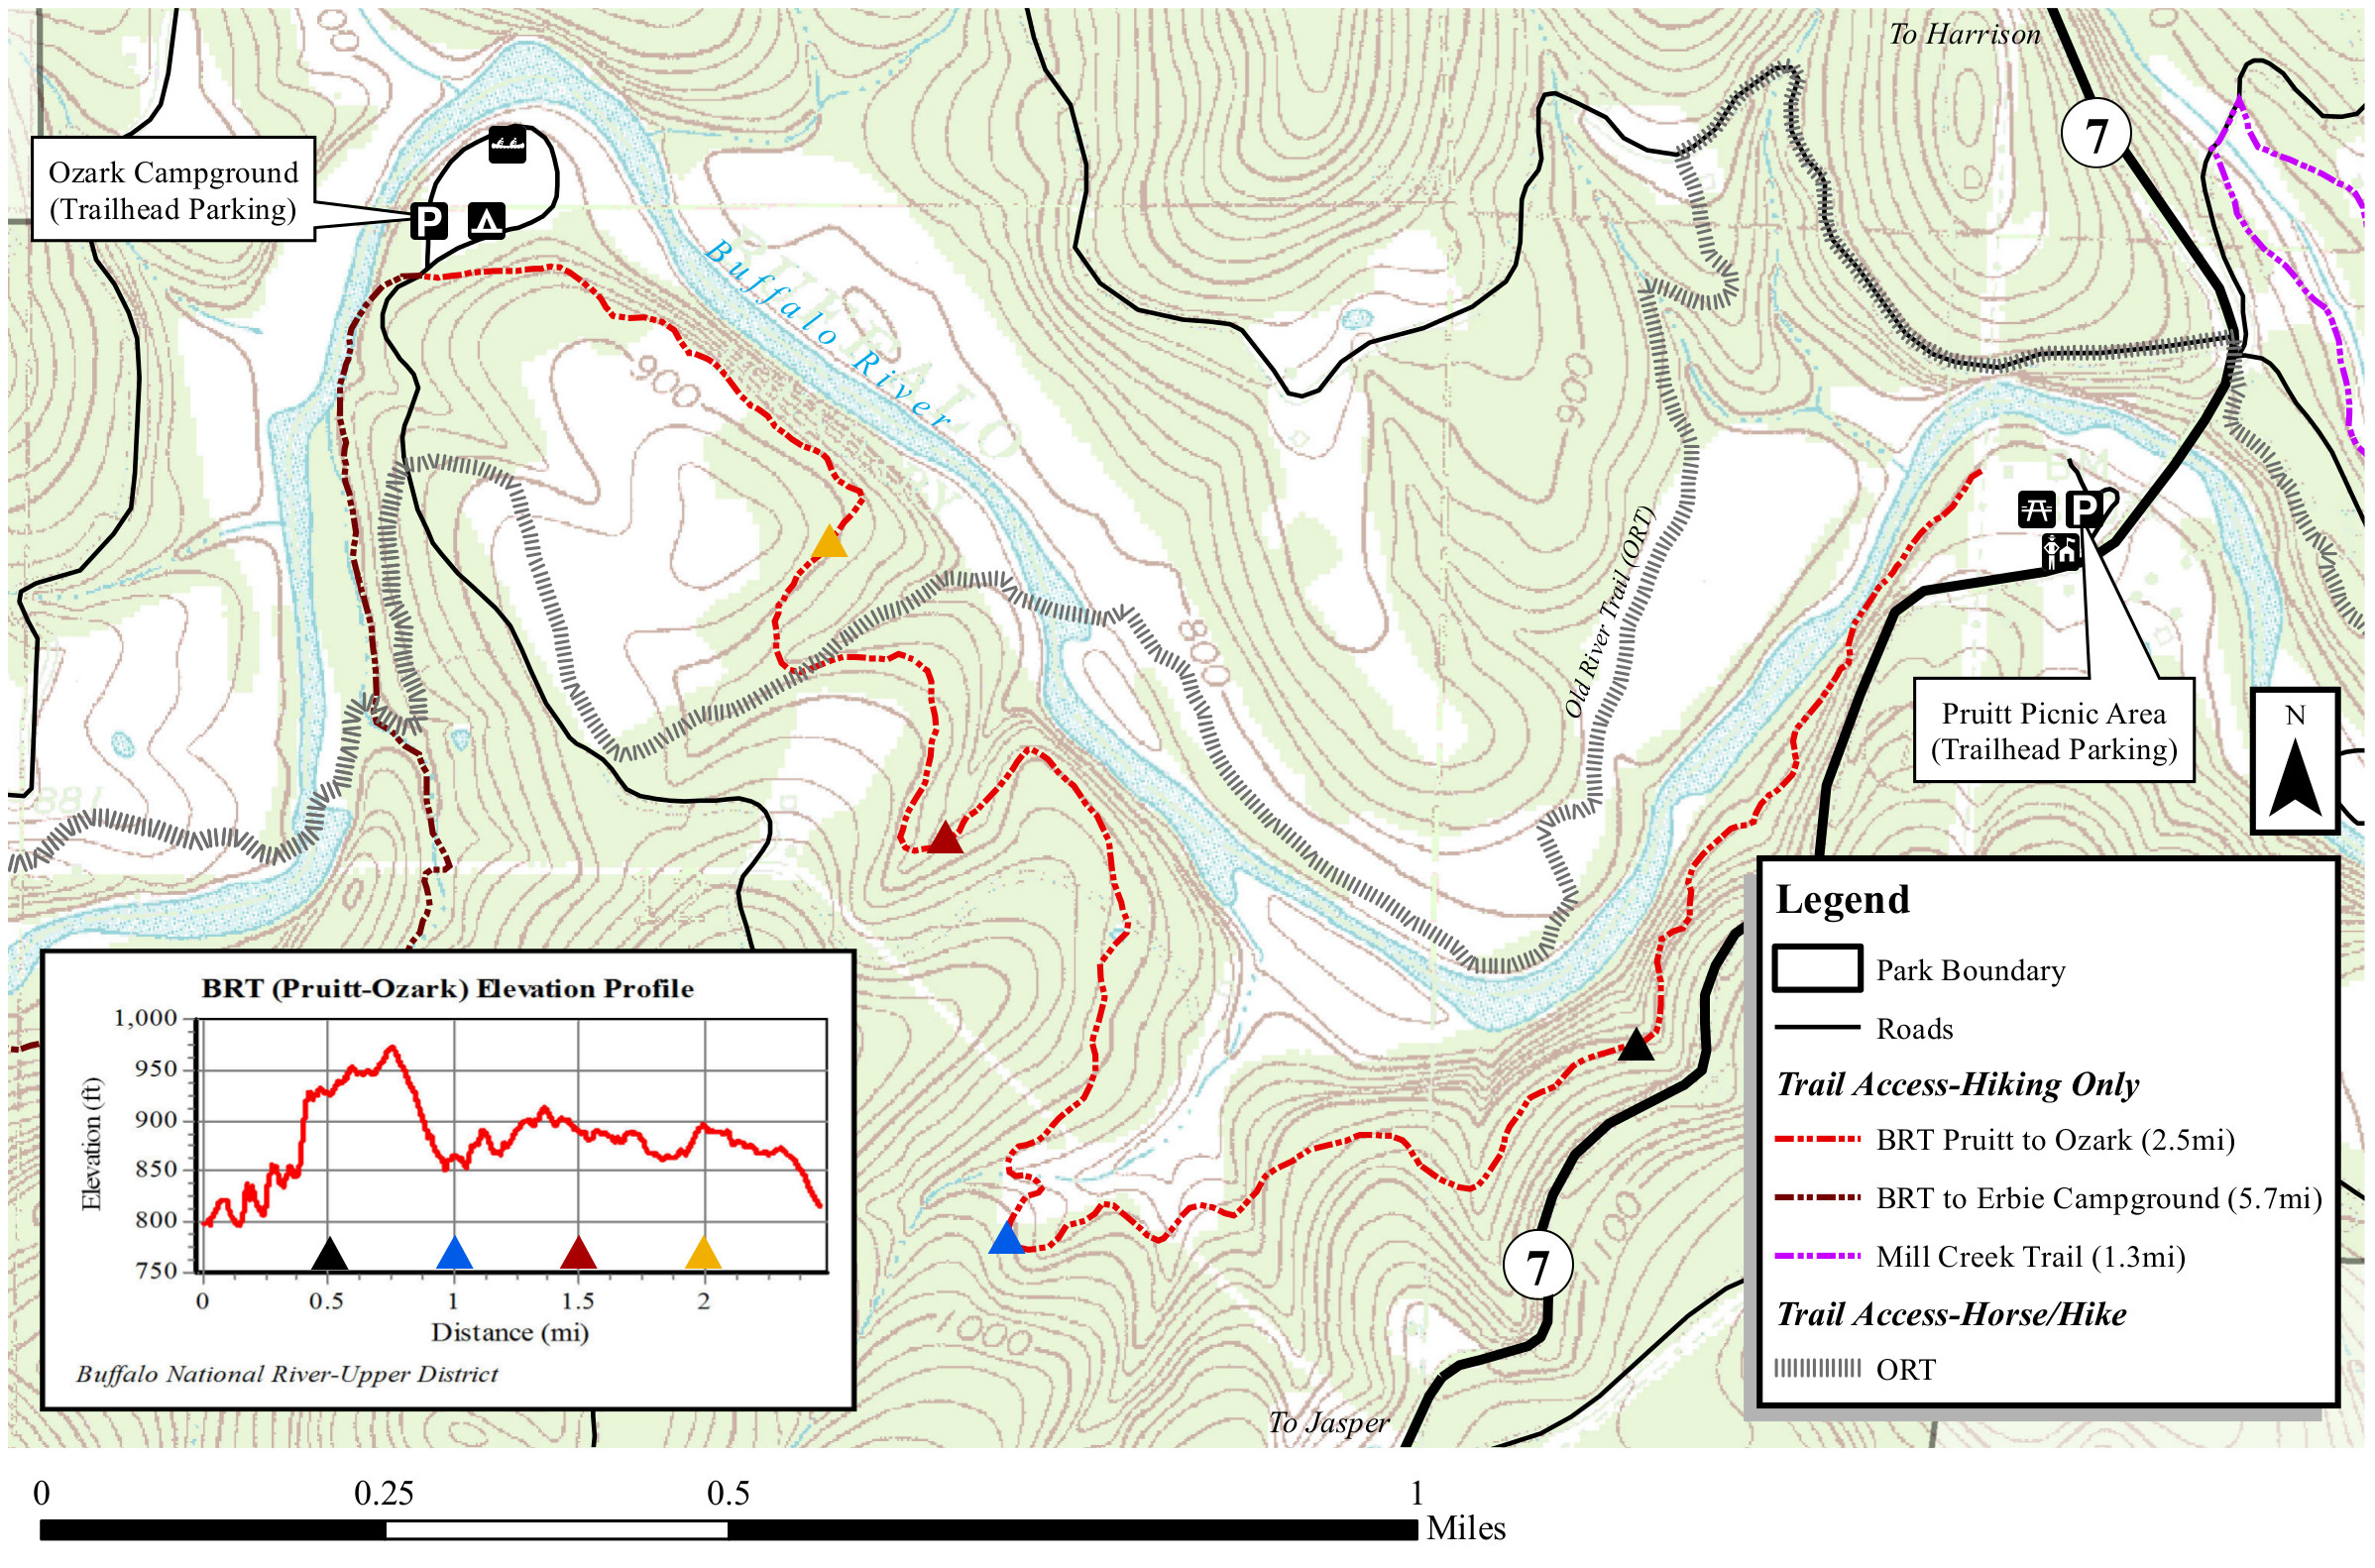 buffalo river trail map ozark to pruitt. buffalo river maps  npmapscom  just free maps period